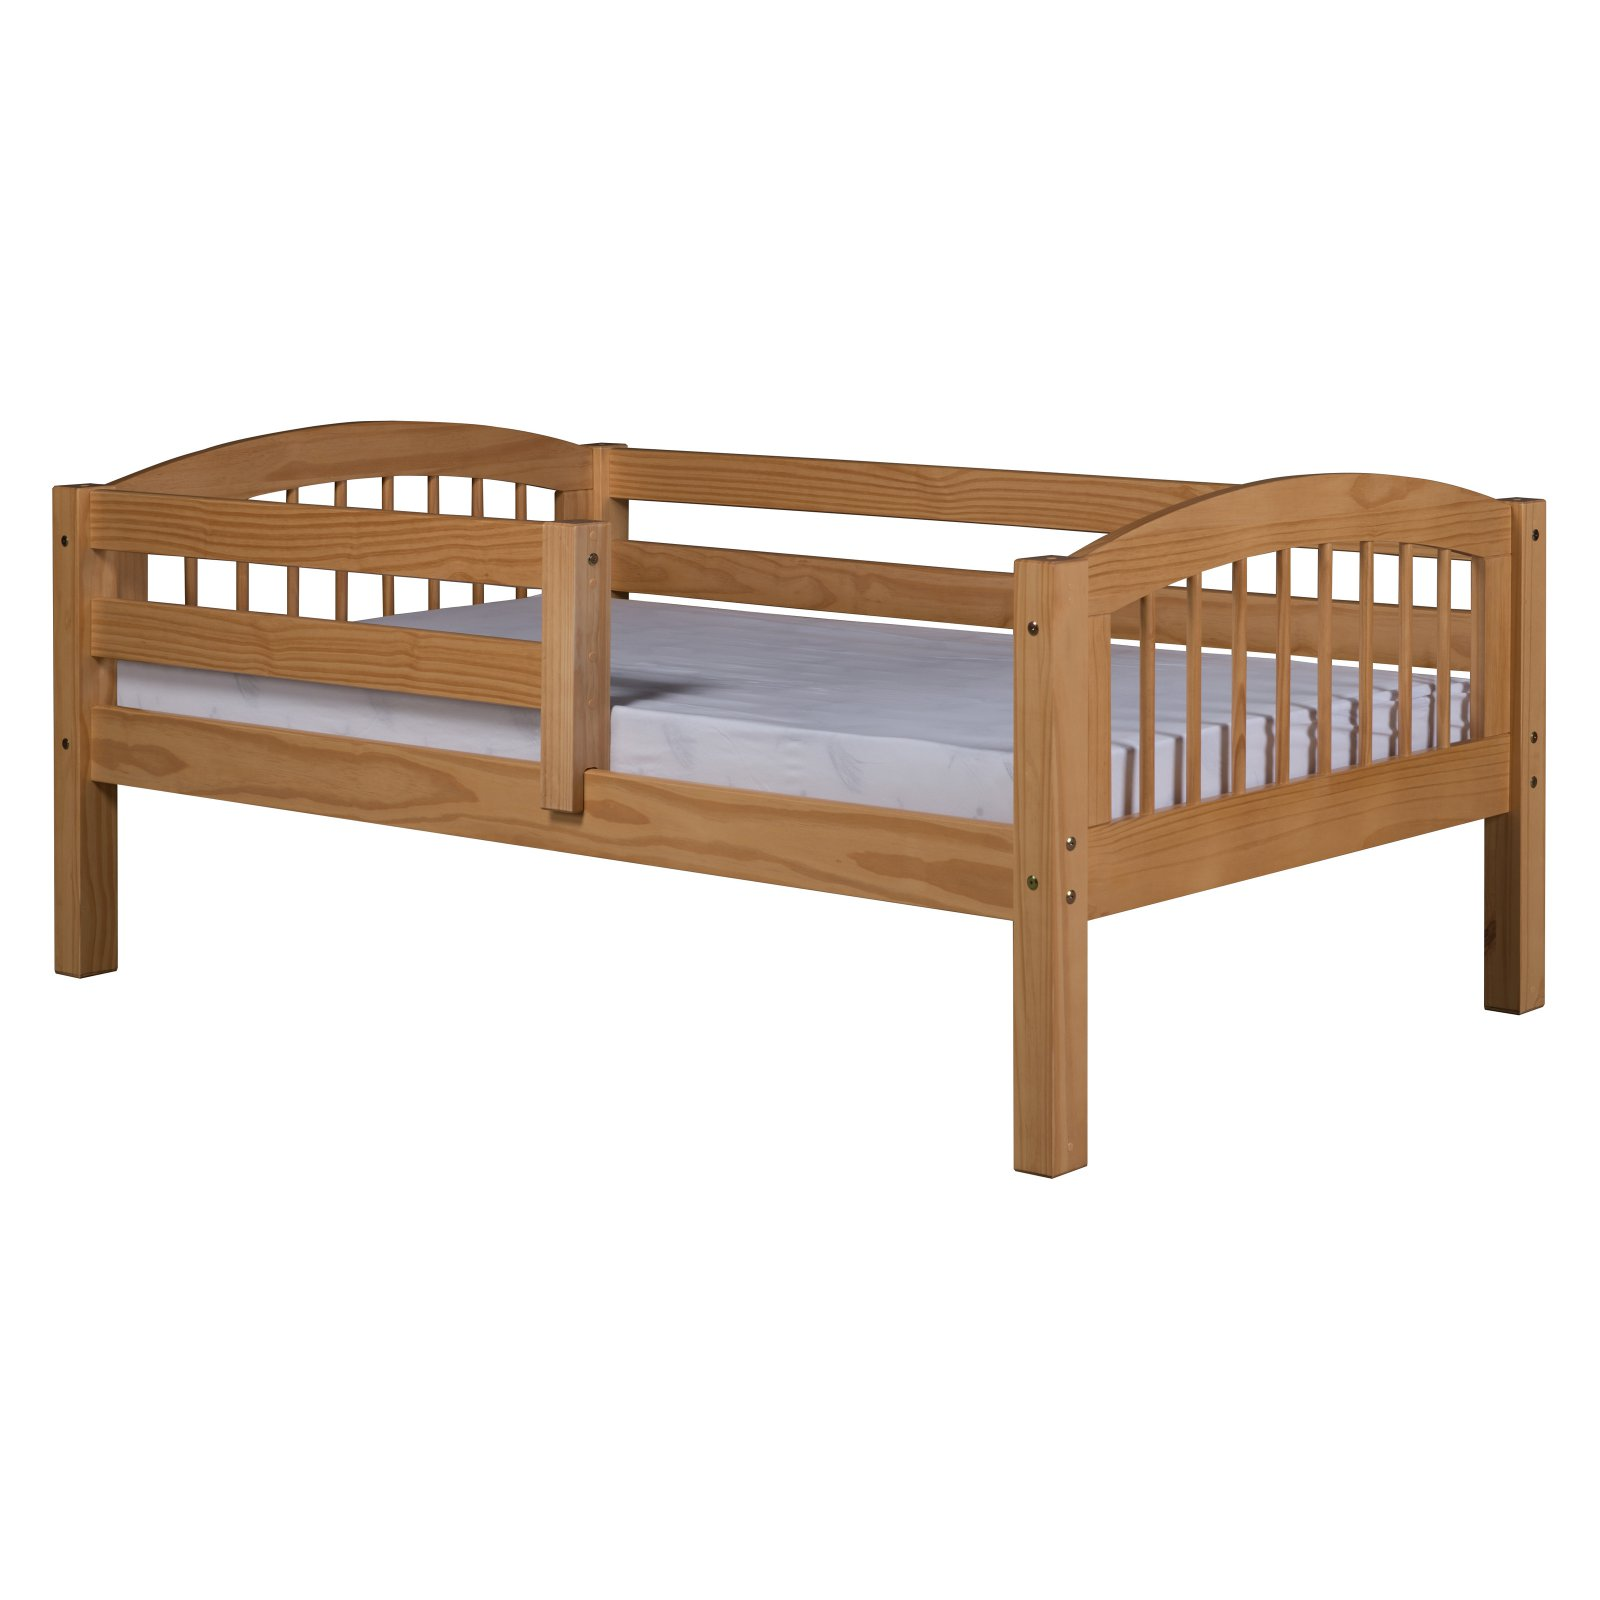 Camaflexi Twin Size Day Bed - Arch Spindle Headboard - Natural Finish